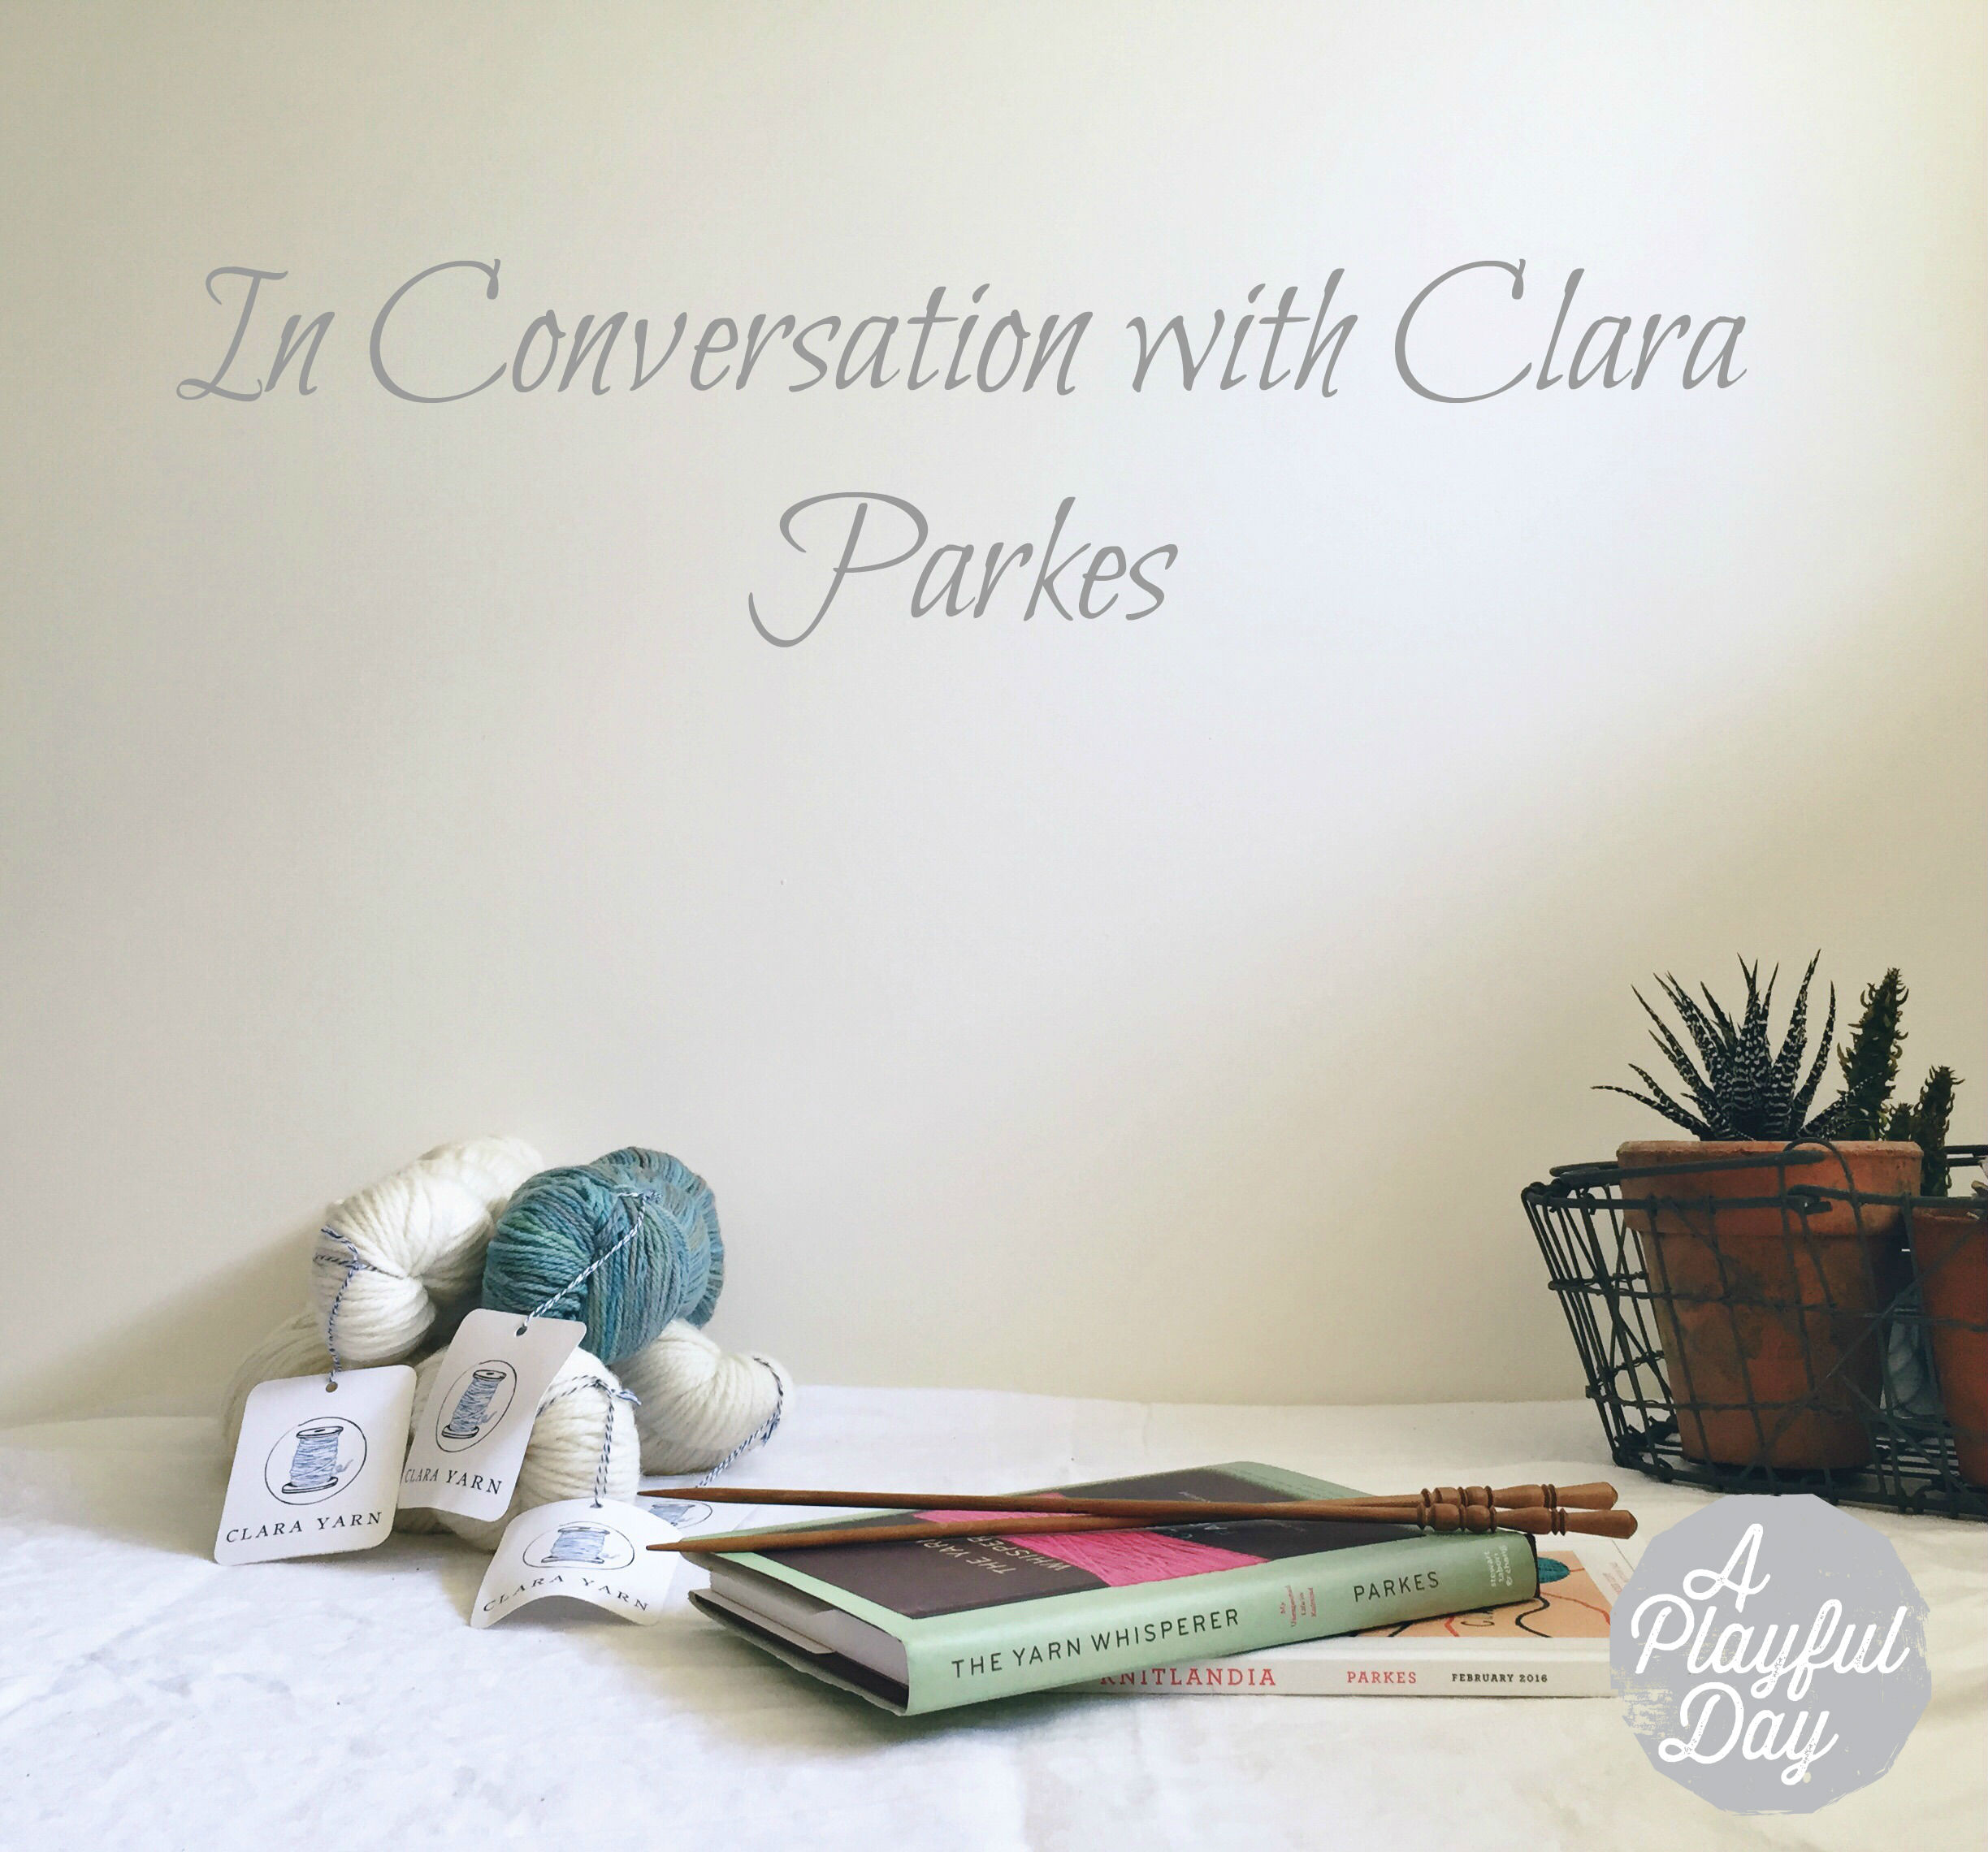 The APD Podcast, Season 2: In Conversation with Clara Parkes